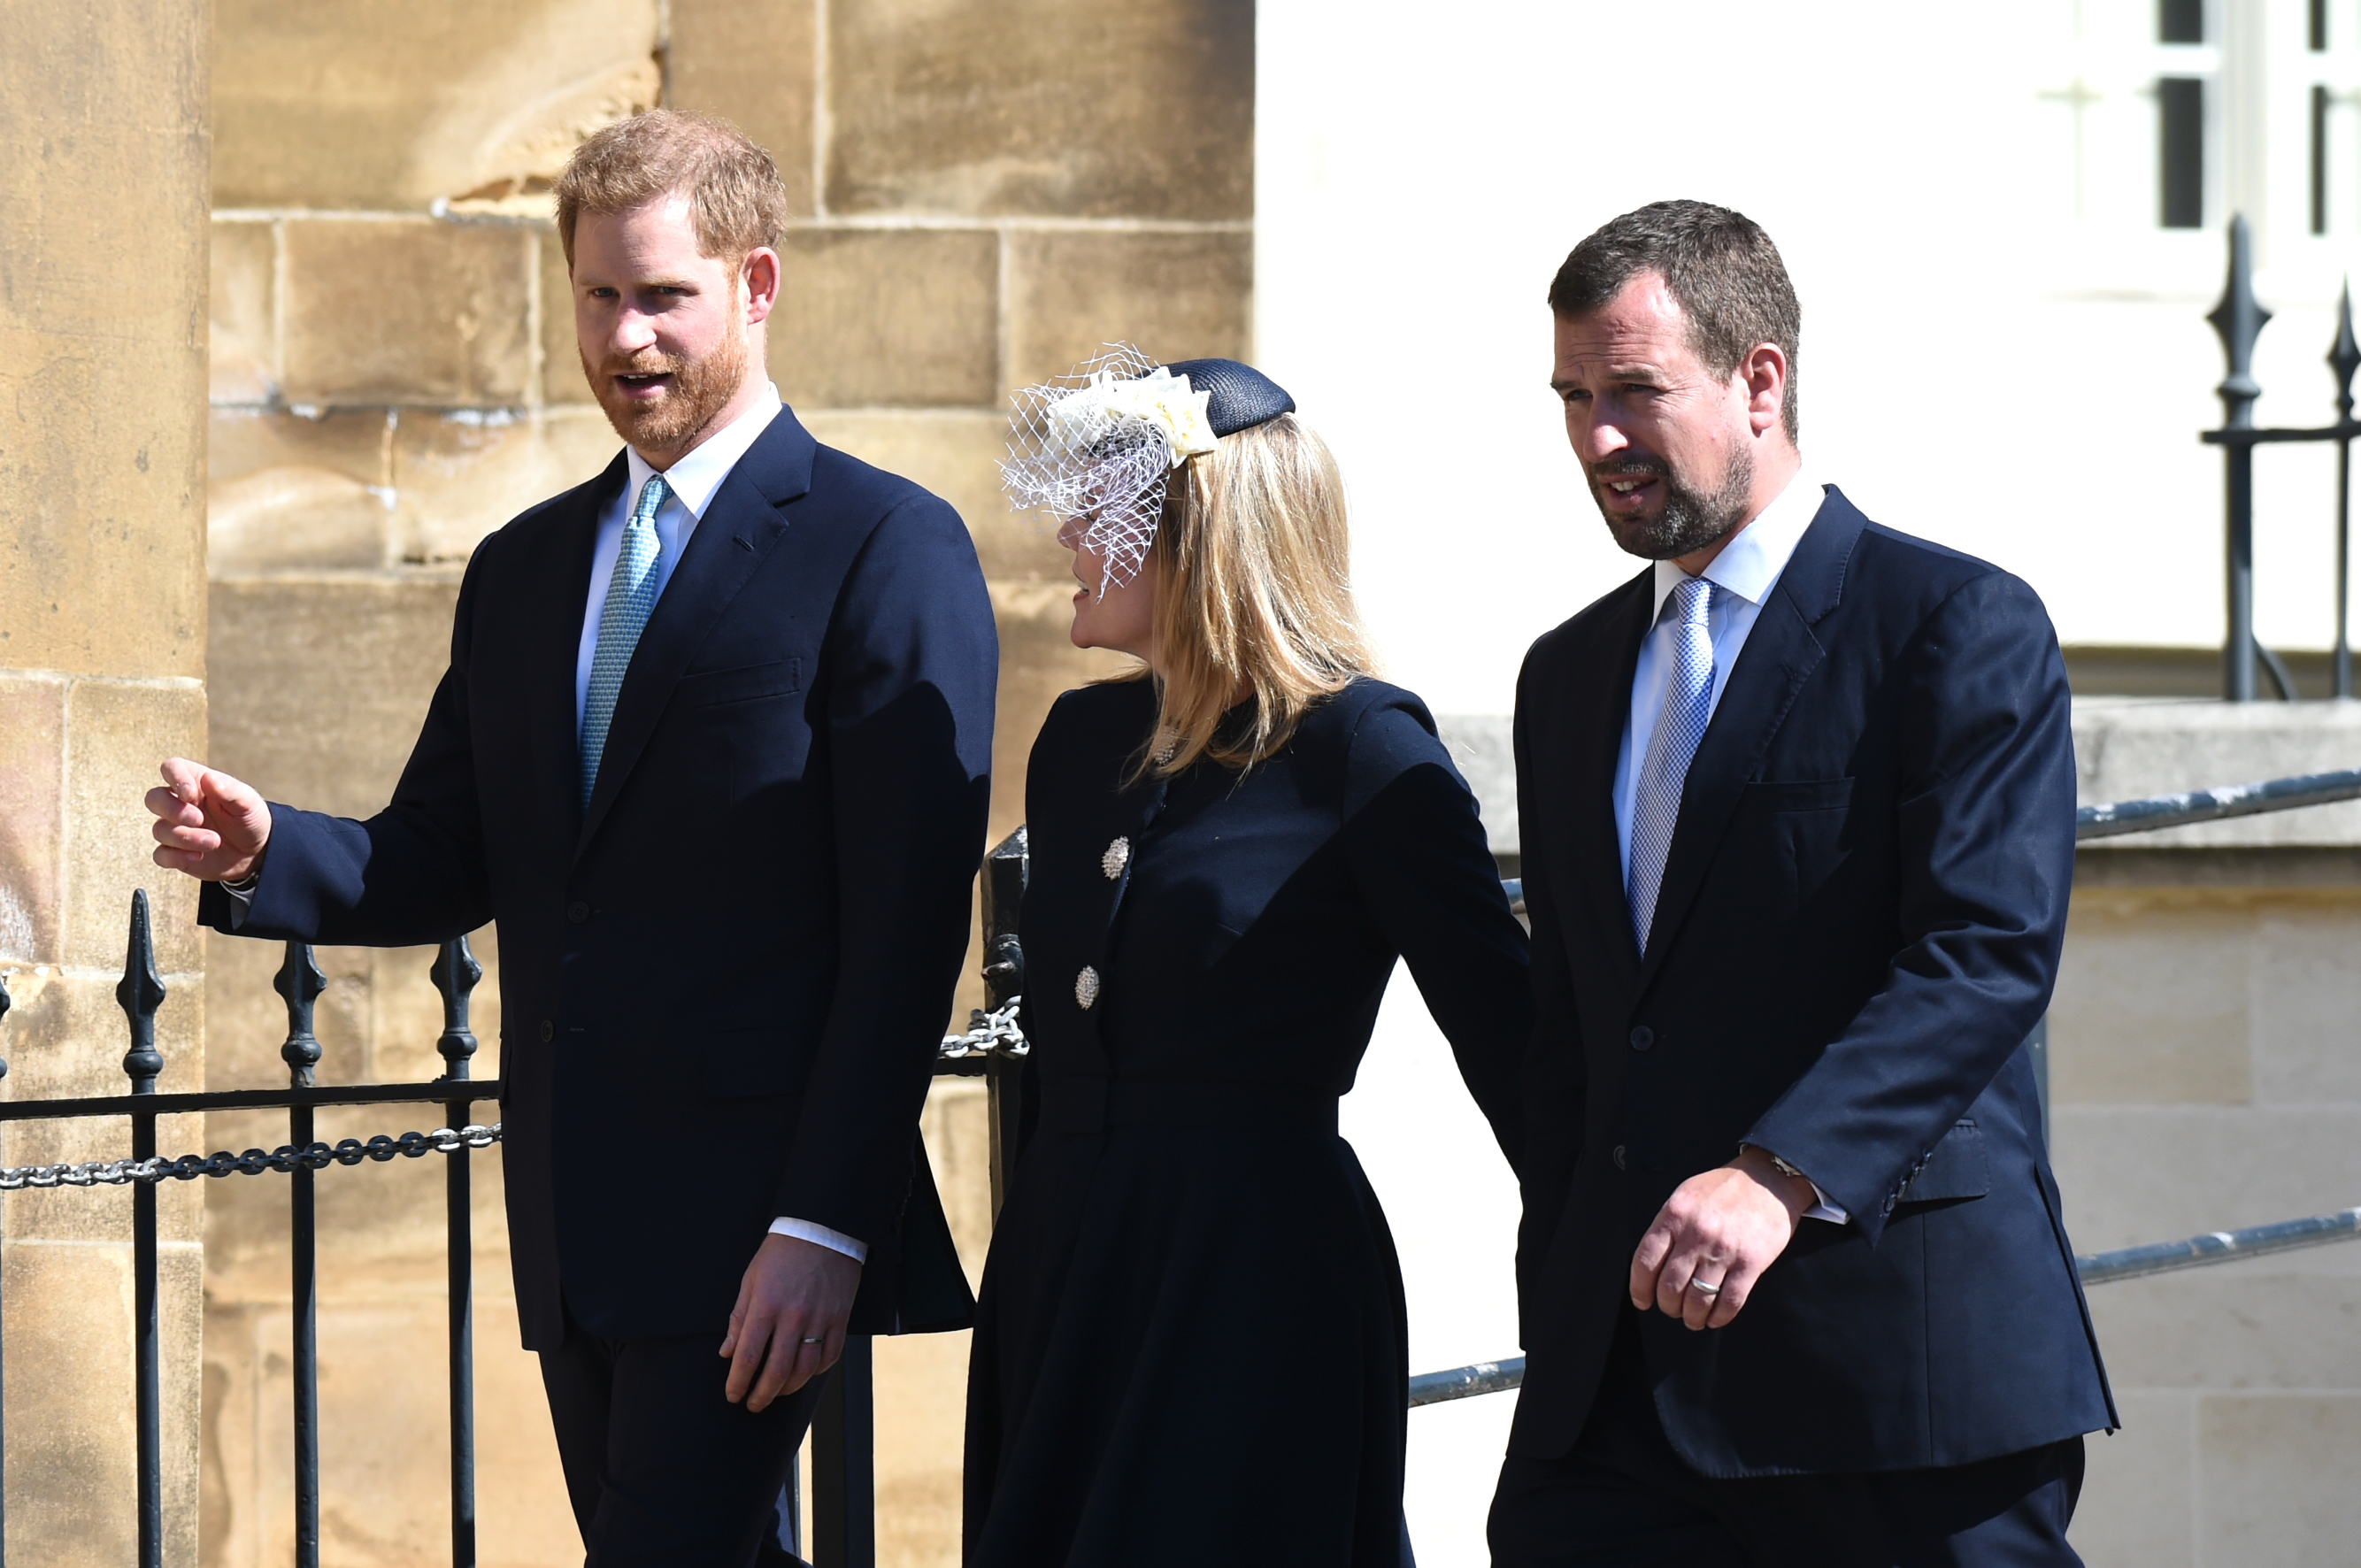 Prince William wants Harry, Meghan 'as far away as possible'